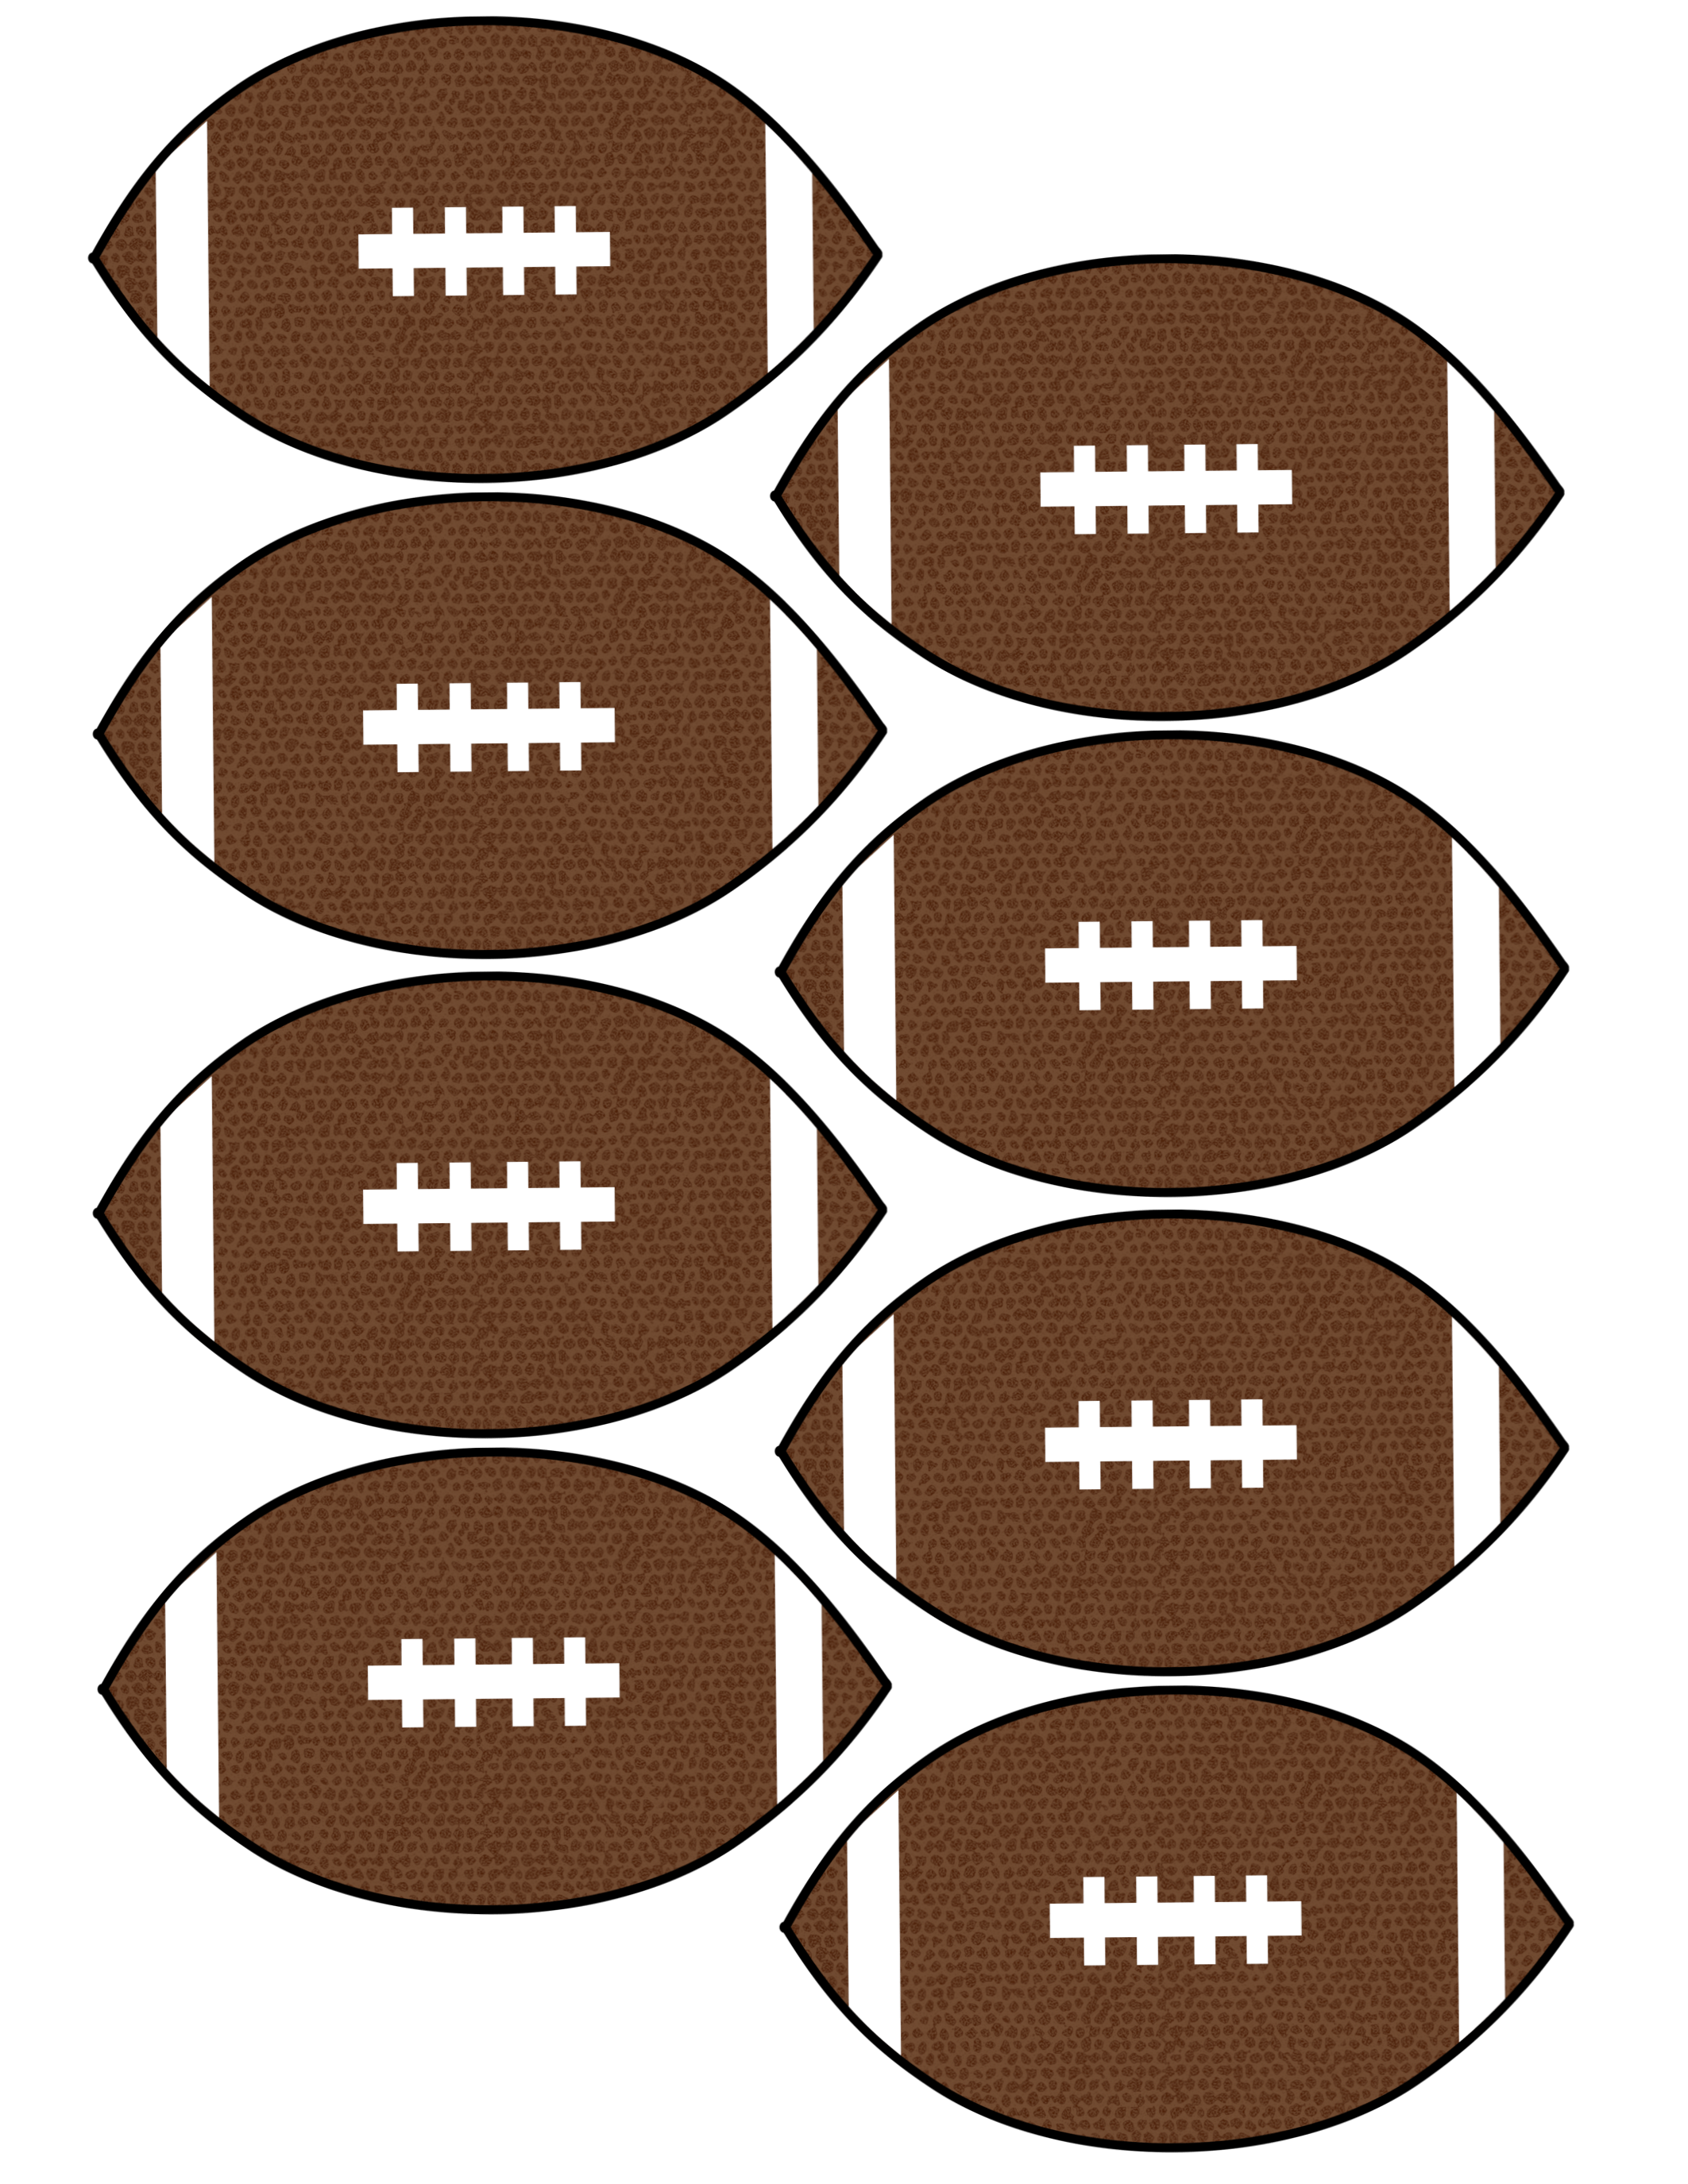 Football garland clipart jpg library library Cheap Super Bowl Decorations {Football Banner} - Paper Trail Design jpg library library